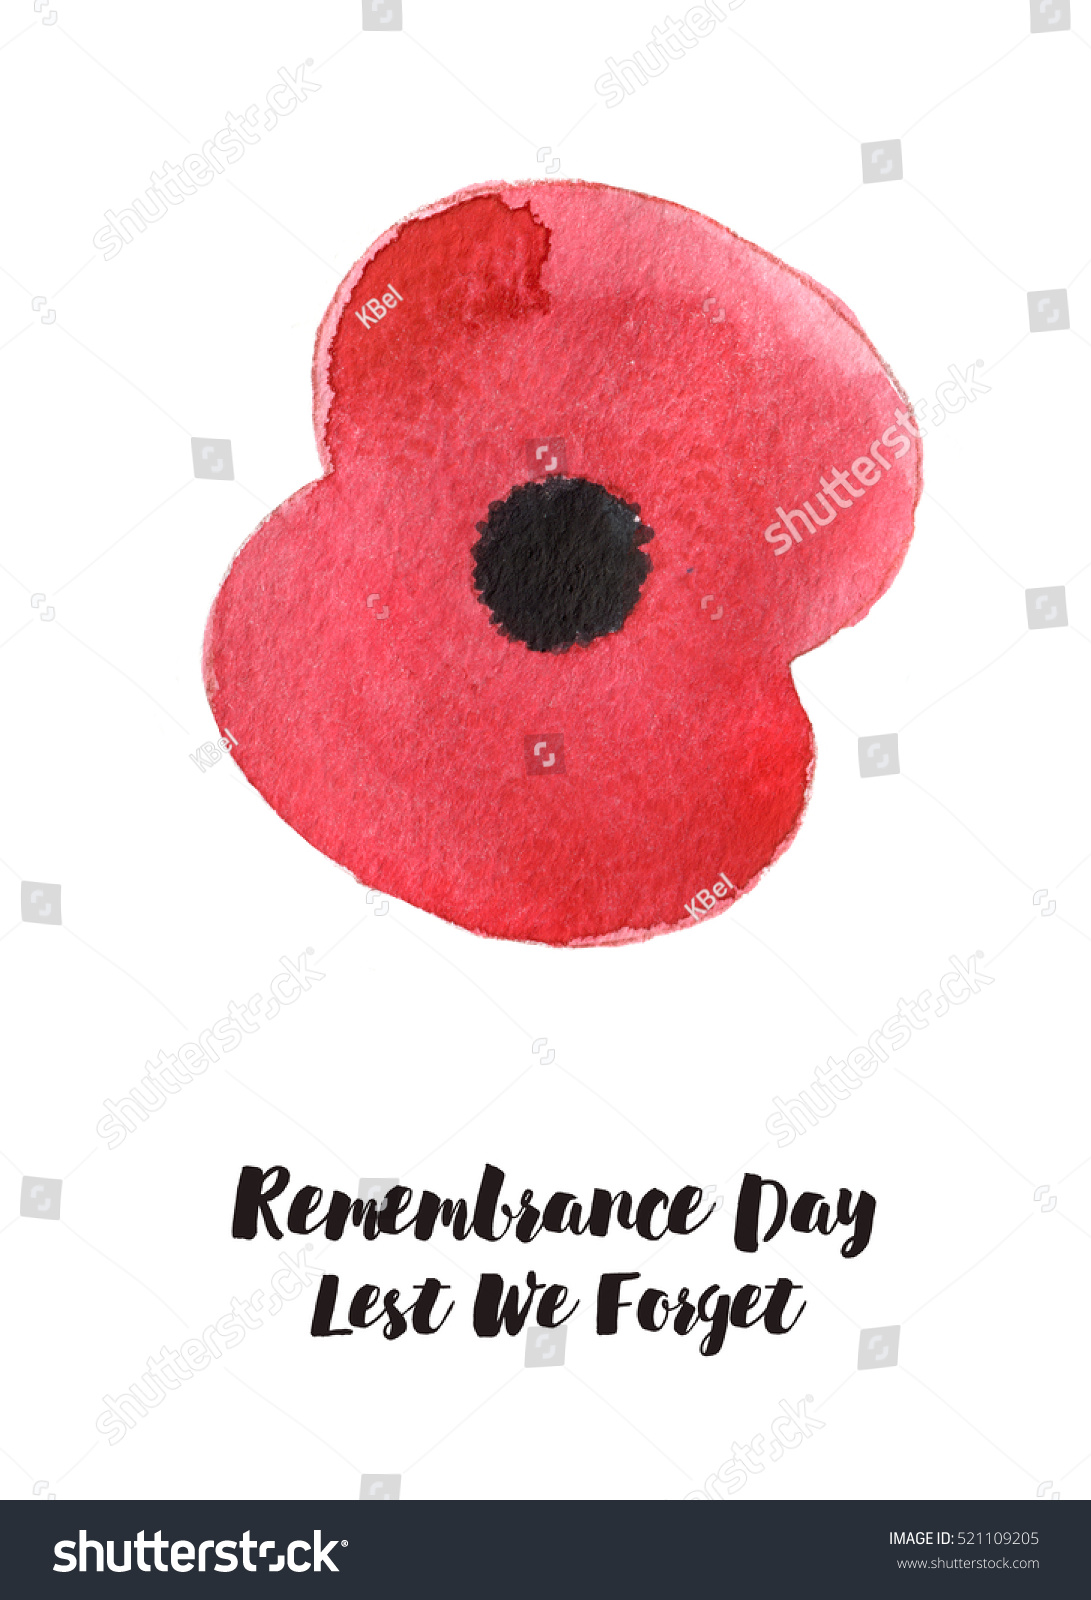 Watercolor illustration poppy flower remembrance day stock watercolor illustration of poppy flower remembrance day symbol banner design buycottarizona